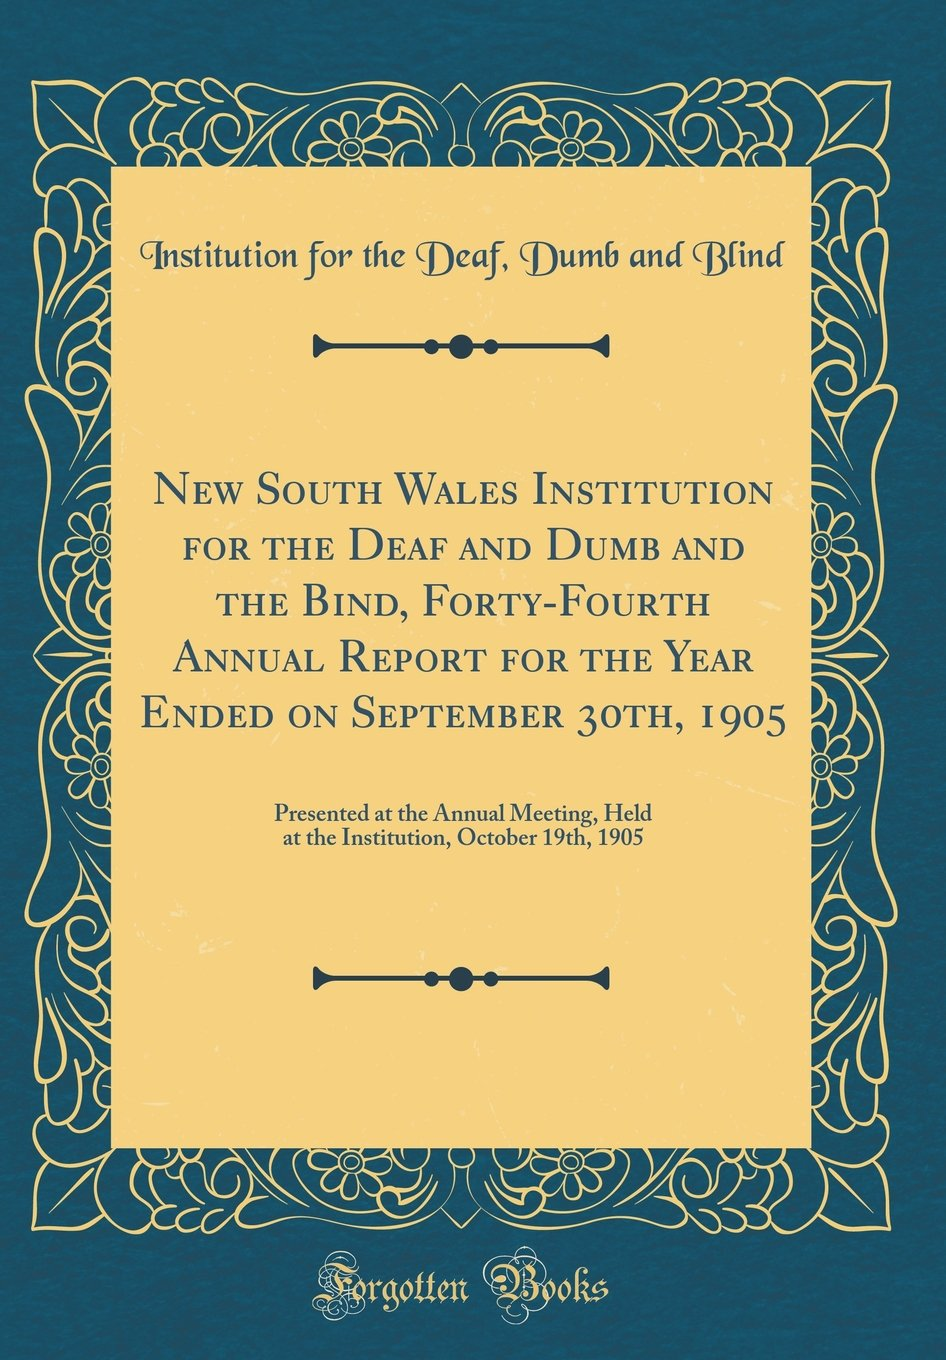 Read Online New South Wales Institution for the Deaf and Dumb and the Bind, Forty-Fourth Annual Report for the Year Ended on September 30th, 1905: Presented at October 19th, 1905 (Classic Reprint) ebook